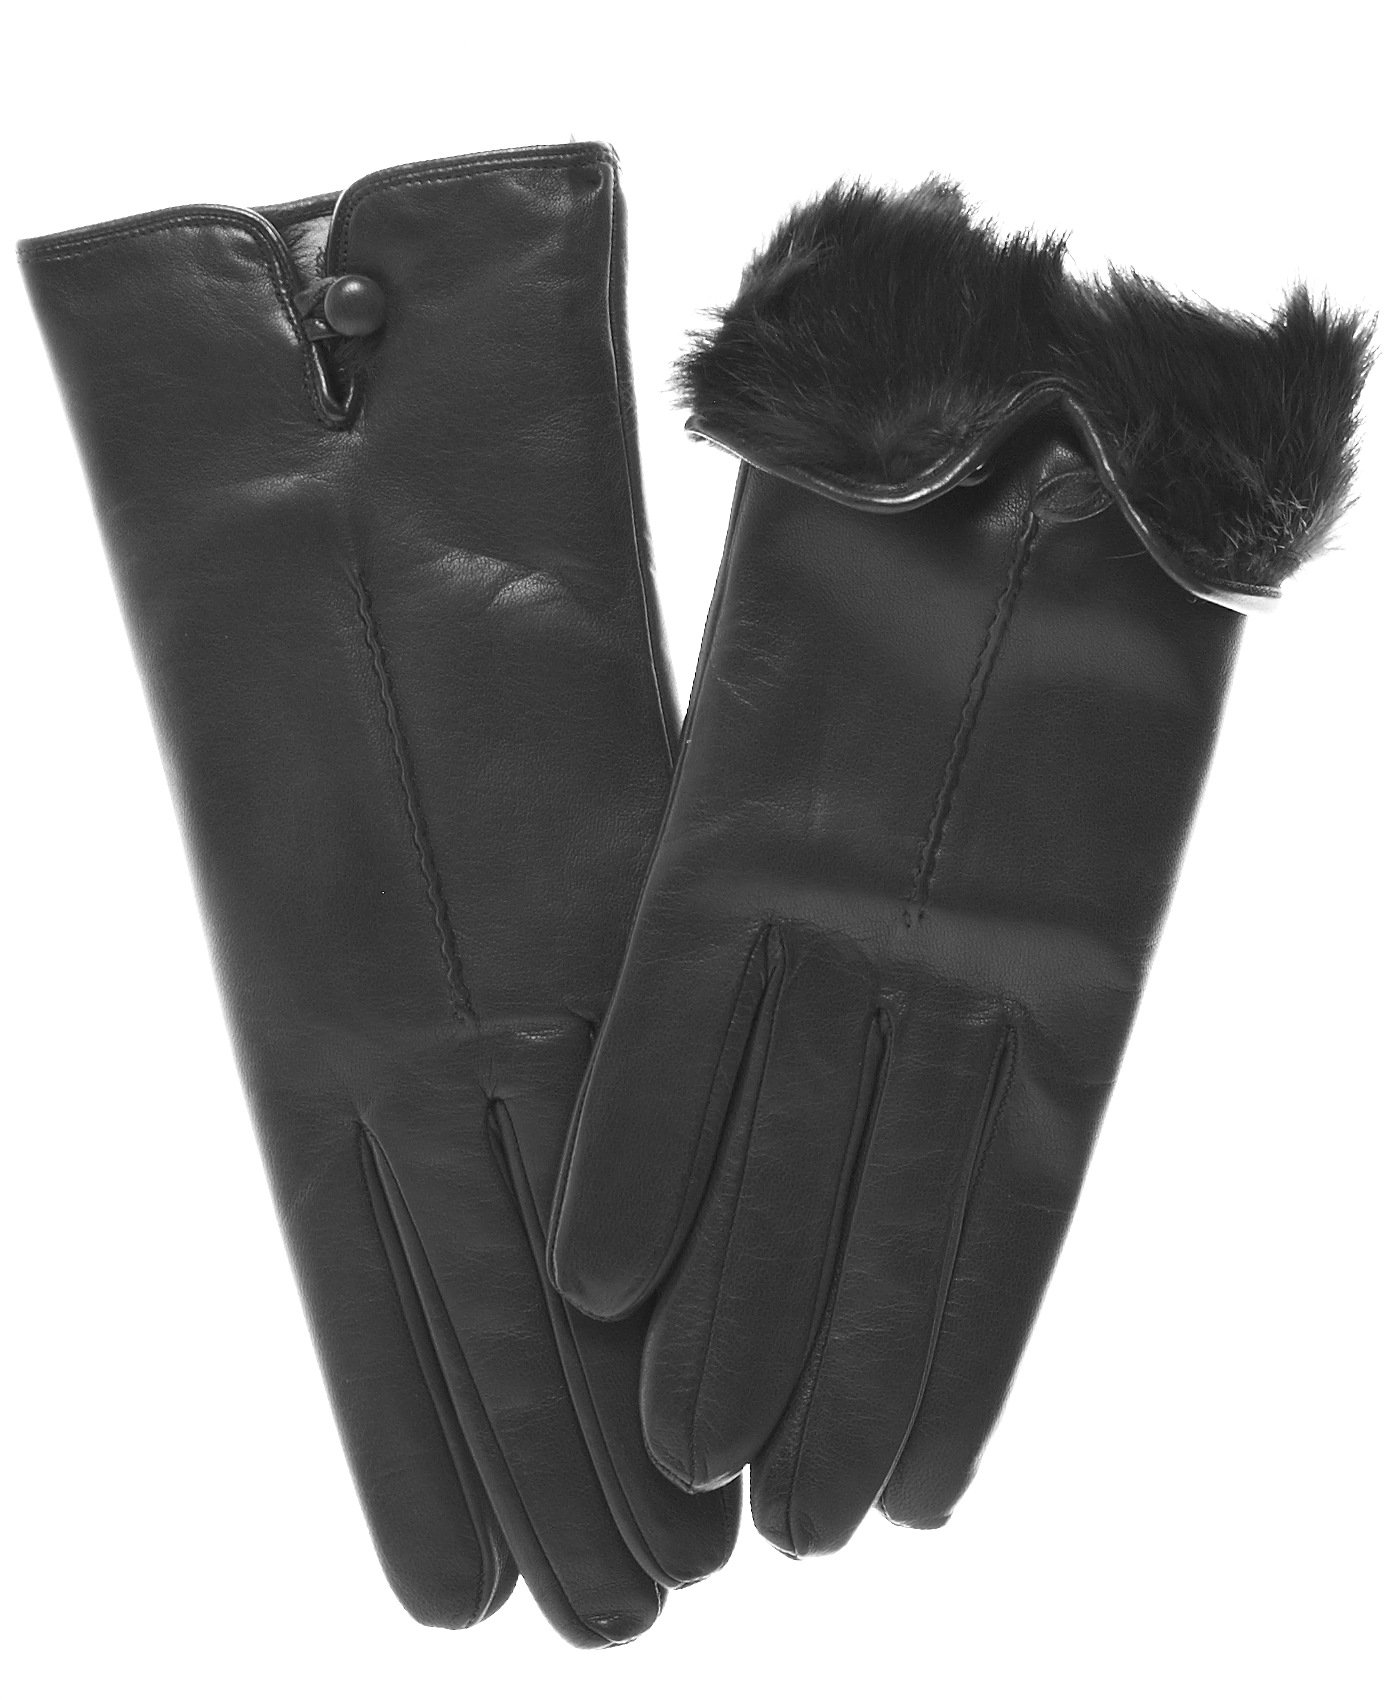 Fratelli Orsini Women's Italian Rabbit Fur Lined Gloves with Button Size 6 Color Black